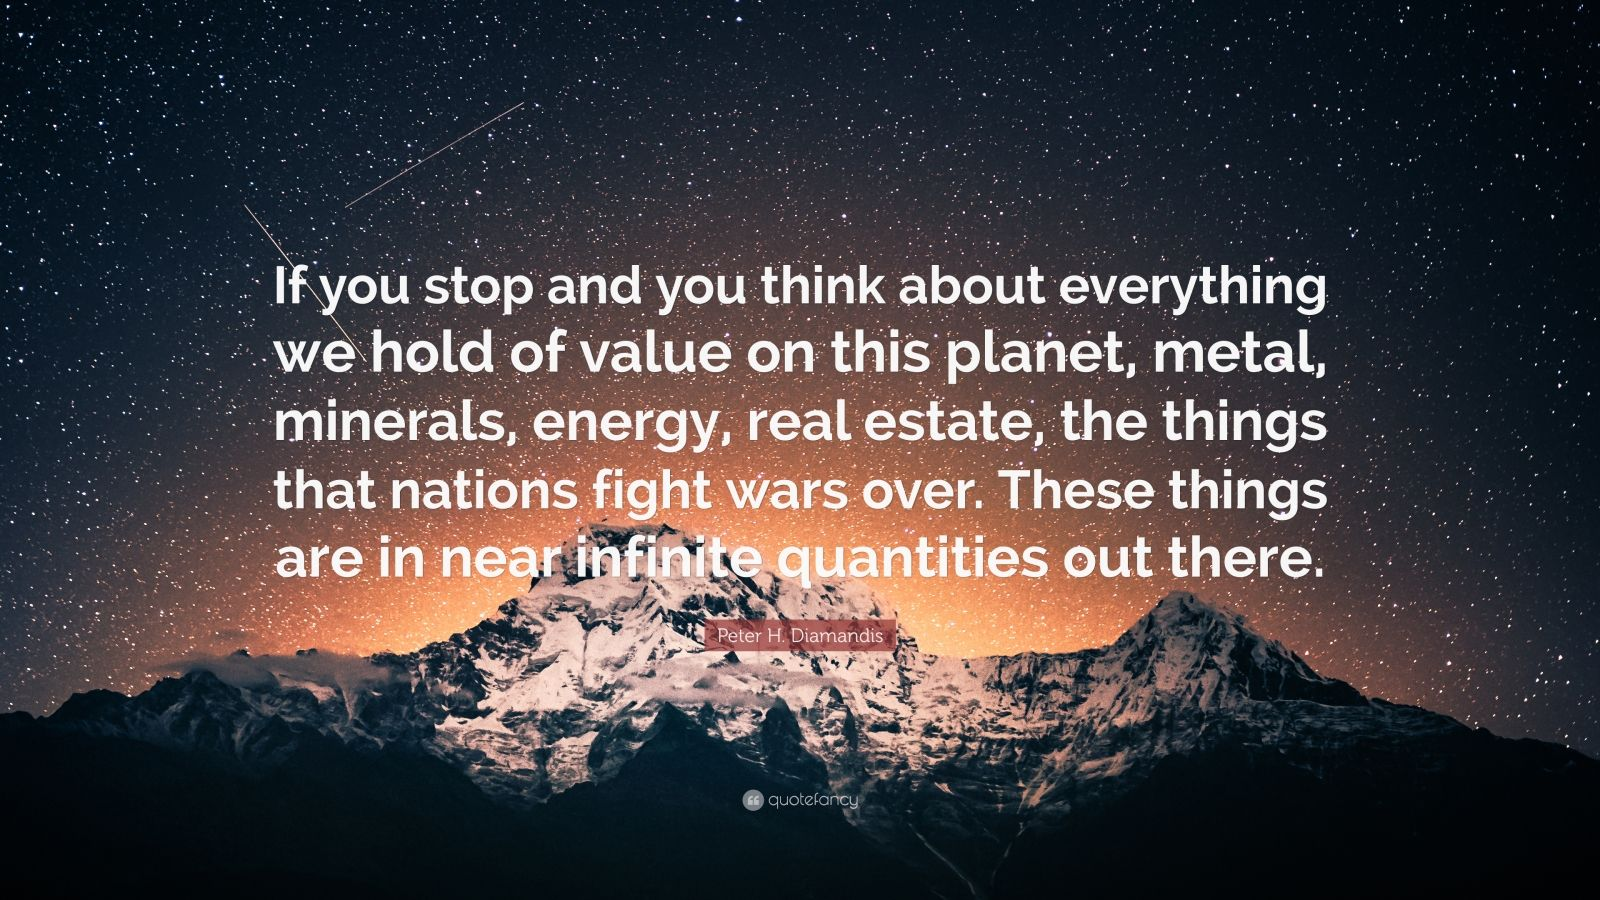 """Peter H. Diamandis Quote: """"If you stop and you think about everything we hold of value on this planet, metal, minerals, energy, real estate, the things that nations fight wars over. These things are in near infinite quantities out there."""""""